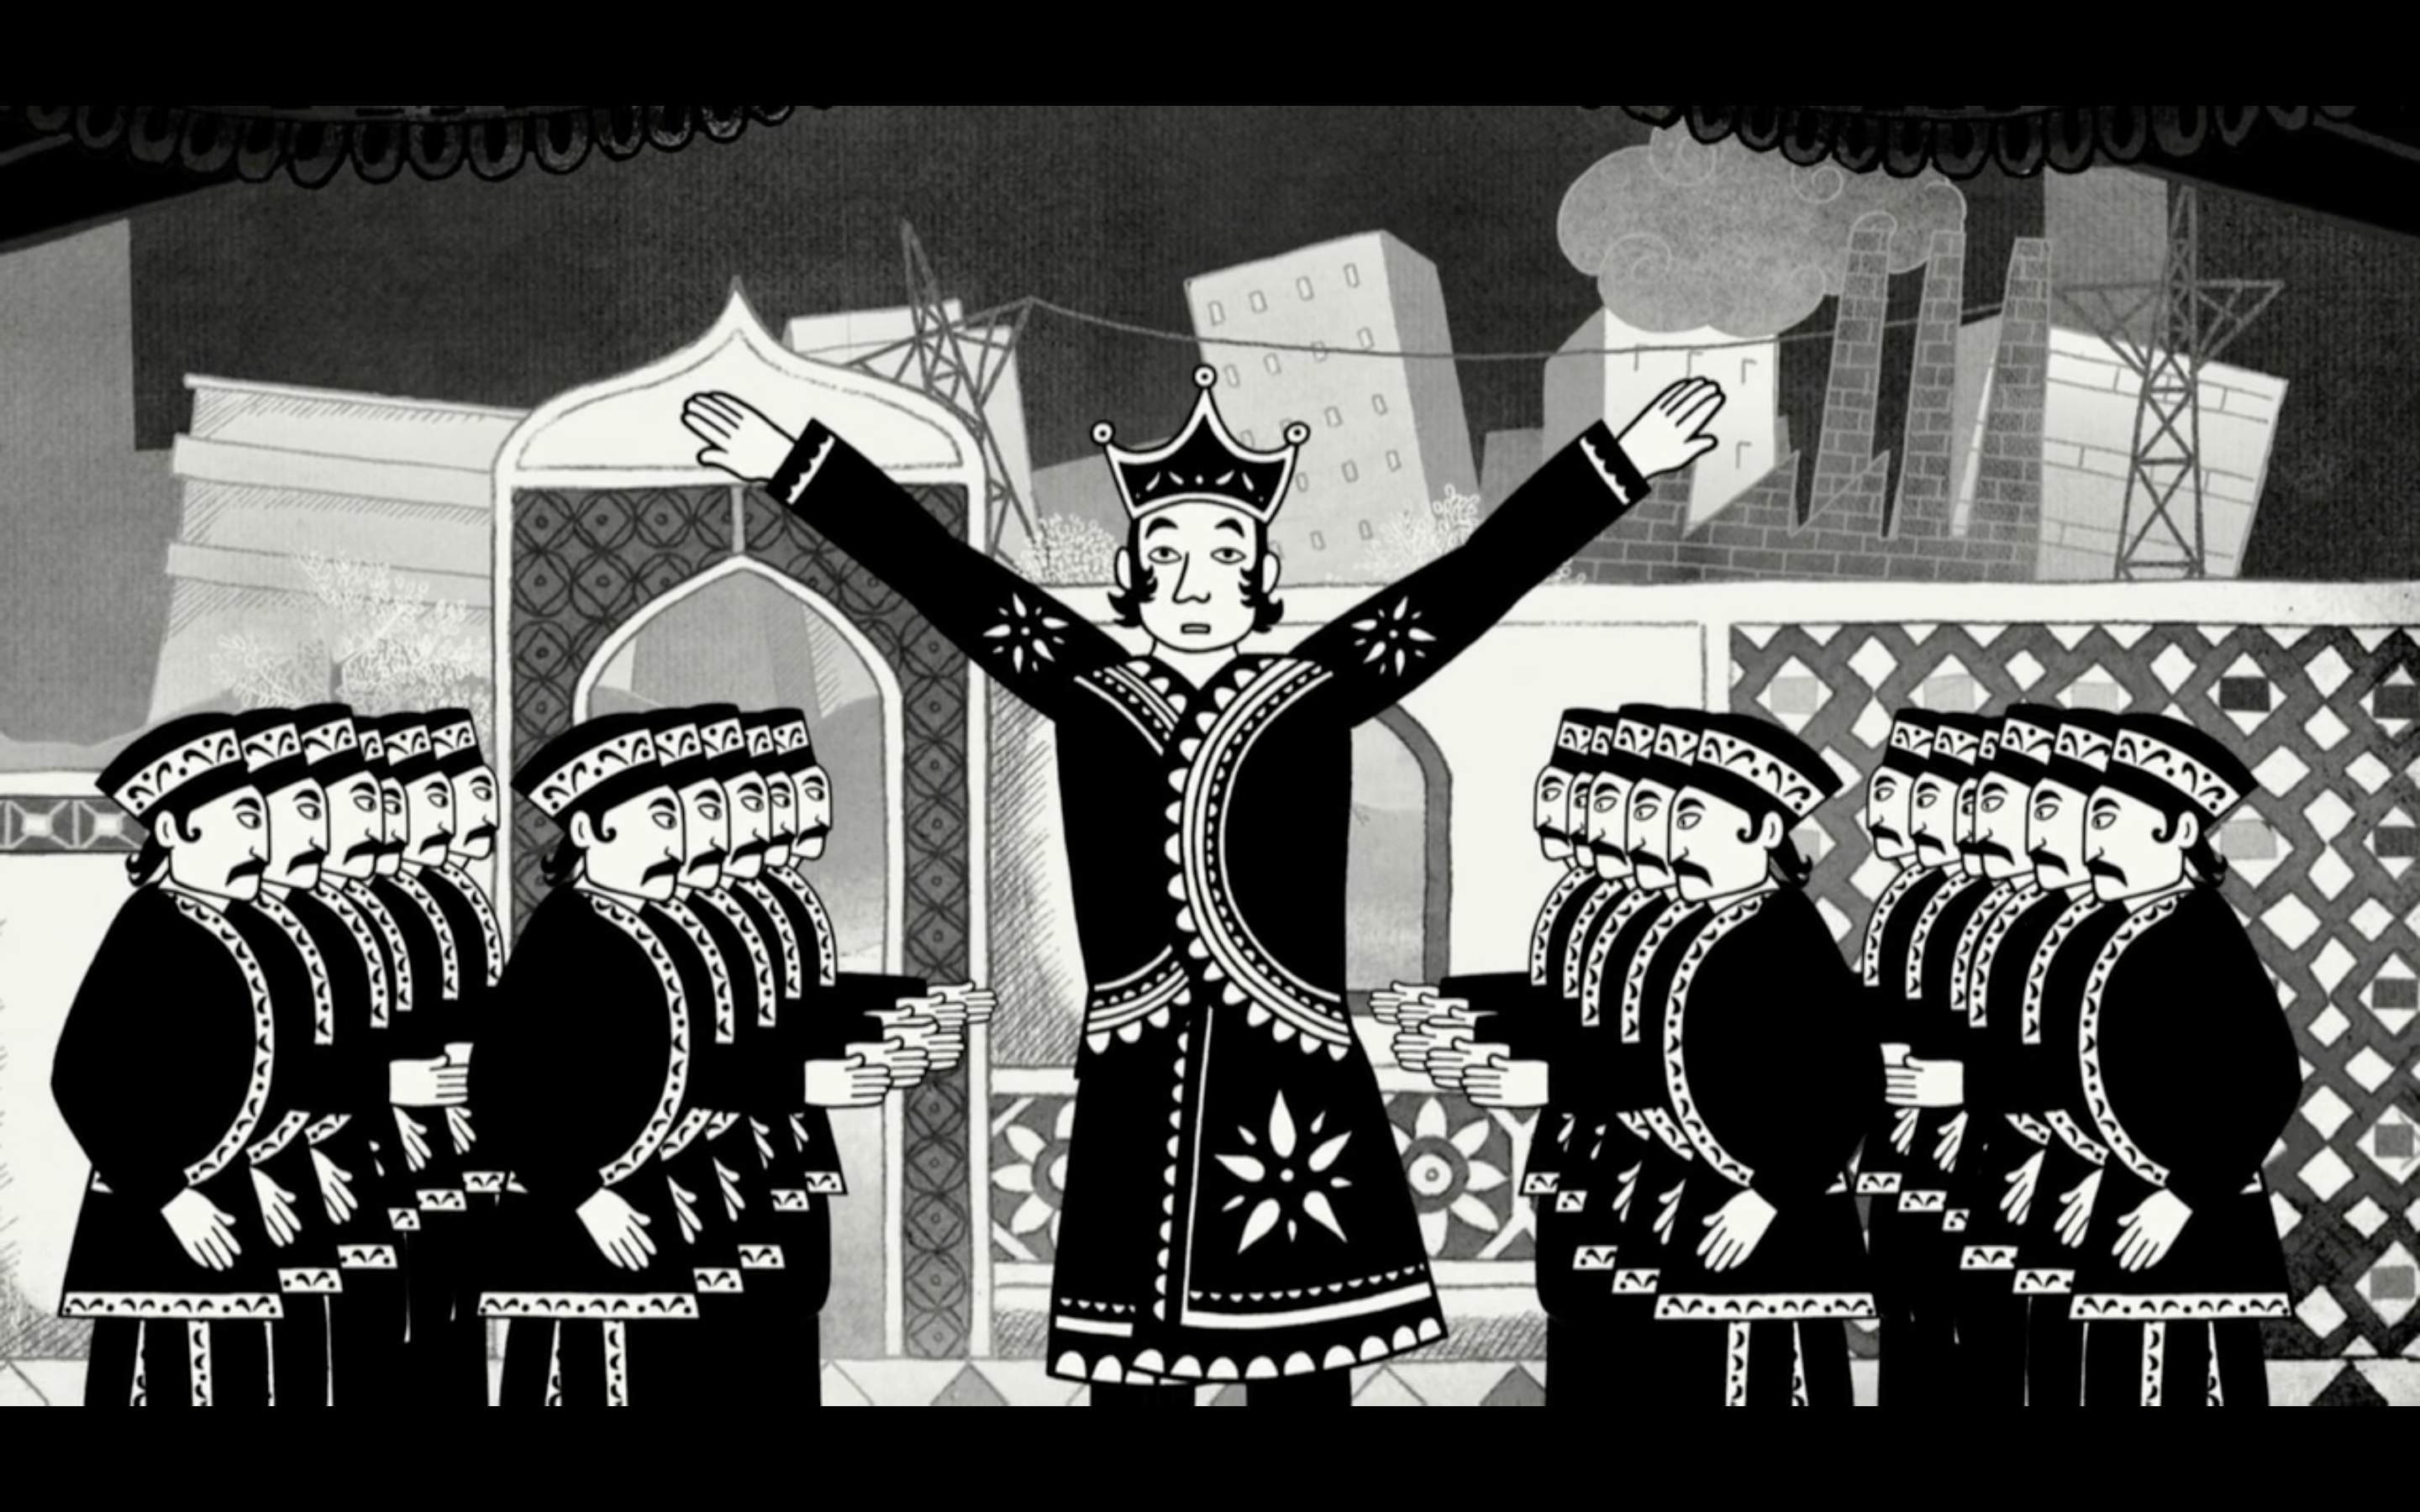 a still from the movie Persepolis